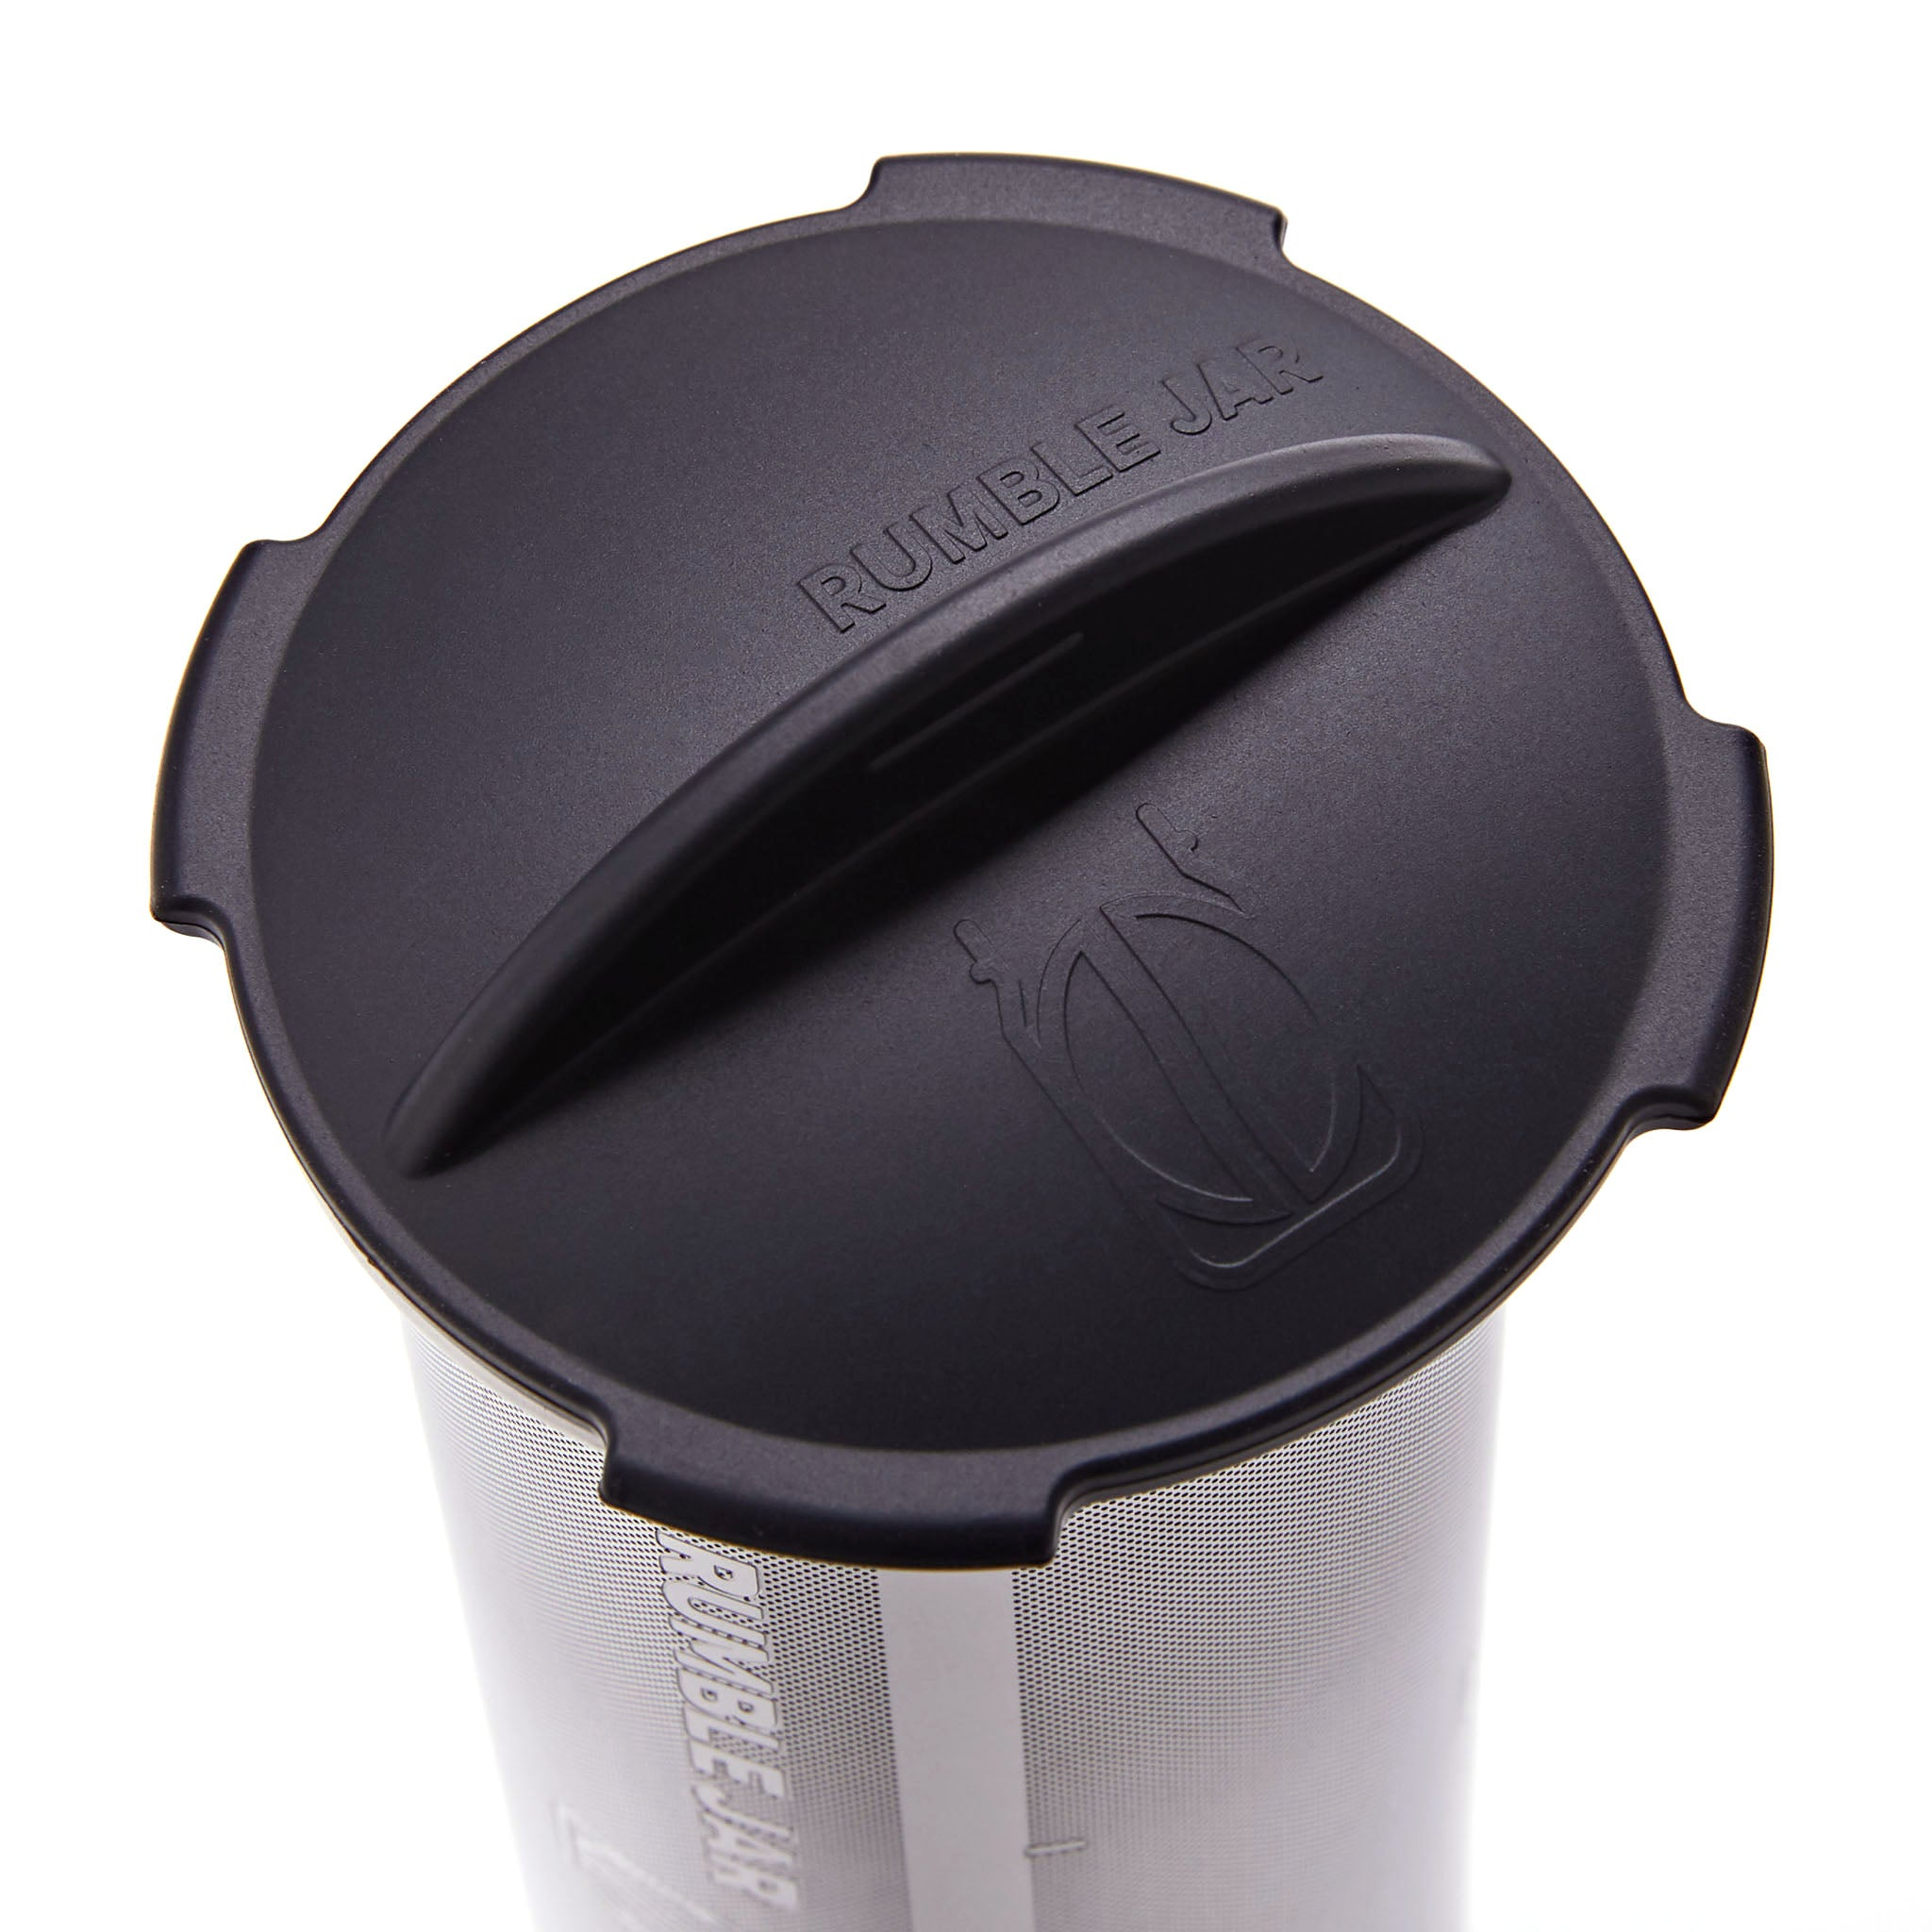 Rumble Jar's silicone cap in the Dark Black color